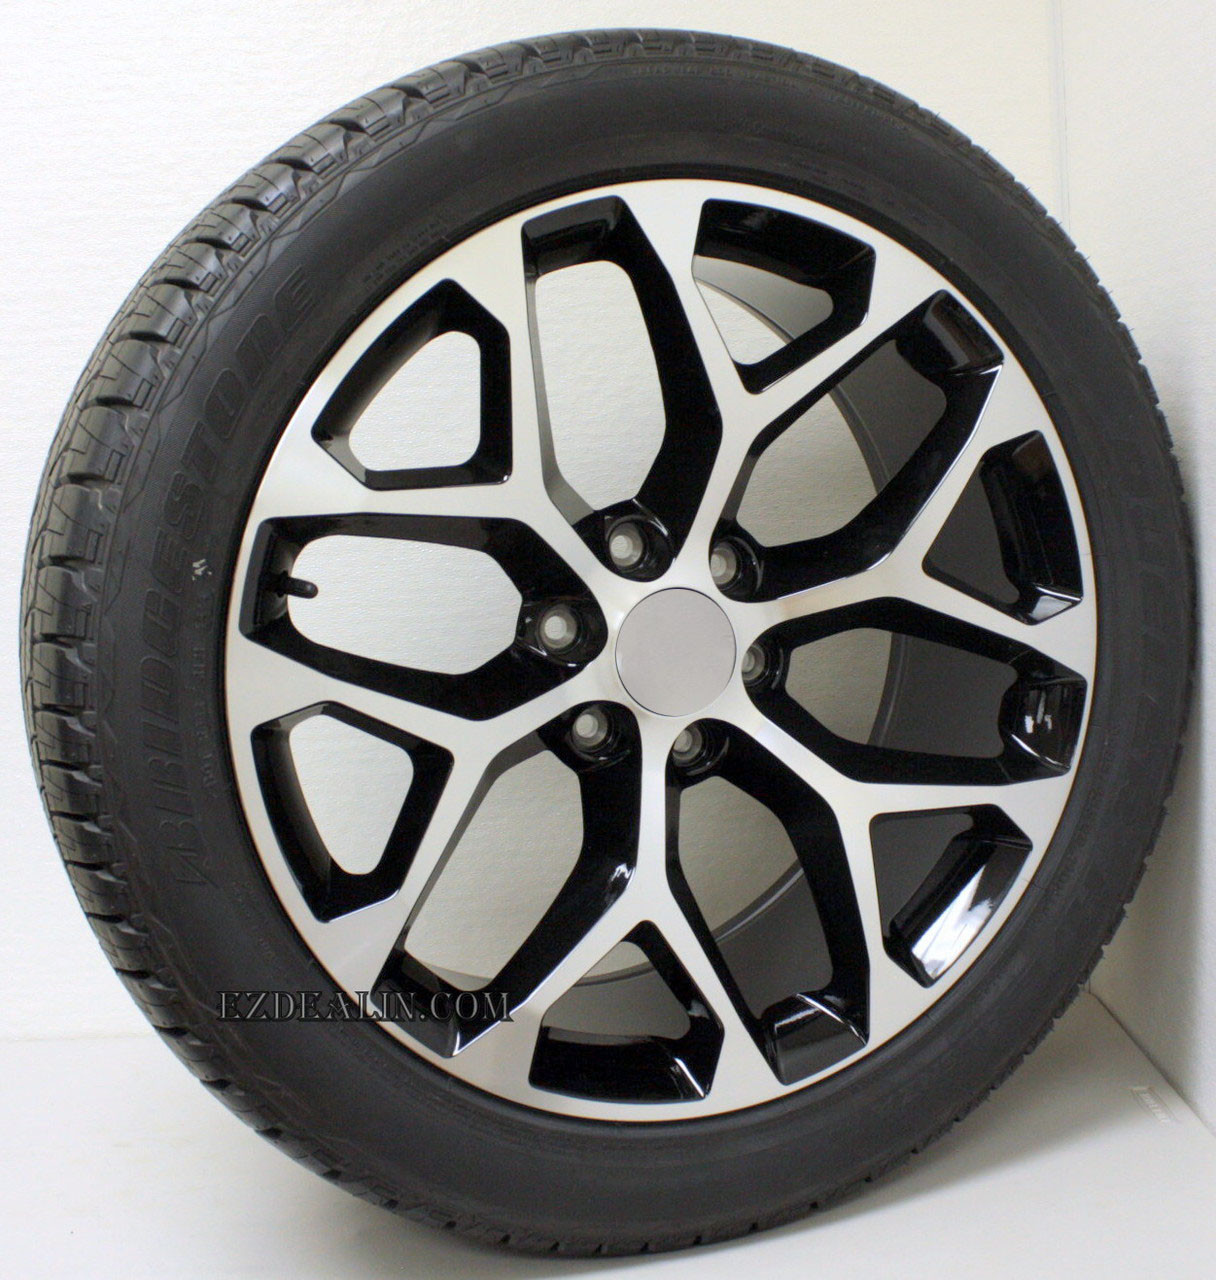 "Black and Machine 22"" Snowflake Wheels with Bridgestone Tires for GMC Sierra, Yukon, Denali - New Set of 4"